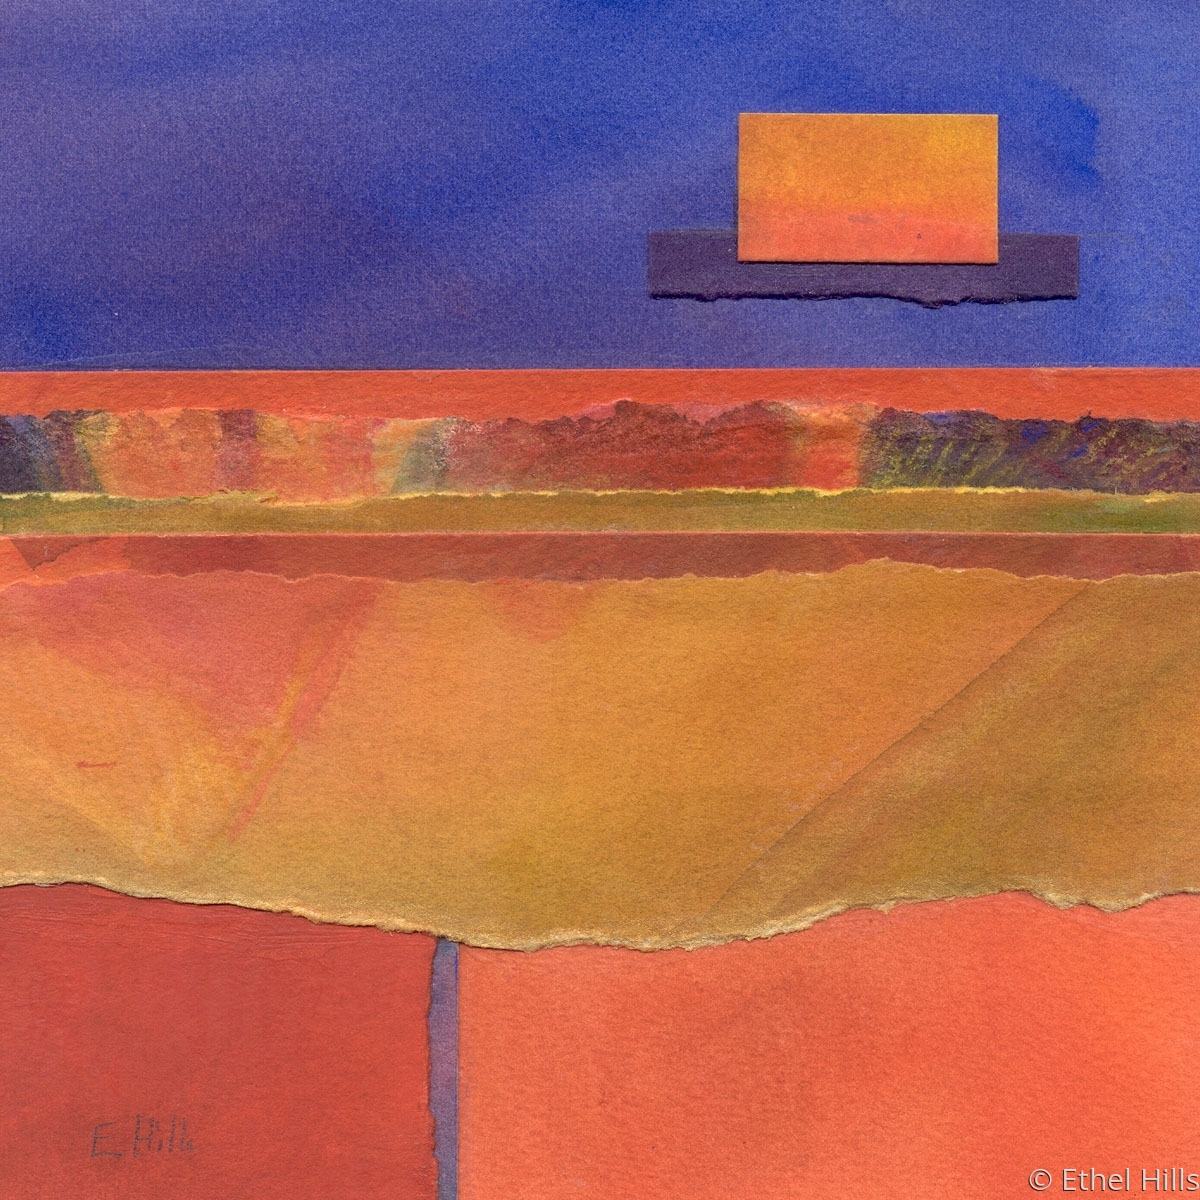 abstract landscape painting in watercolor collage by Ethel Hills in blue and orange (large view)